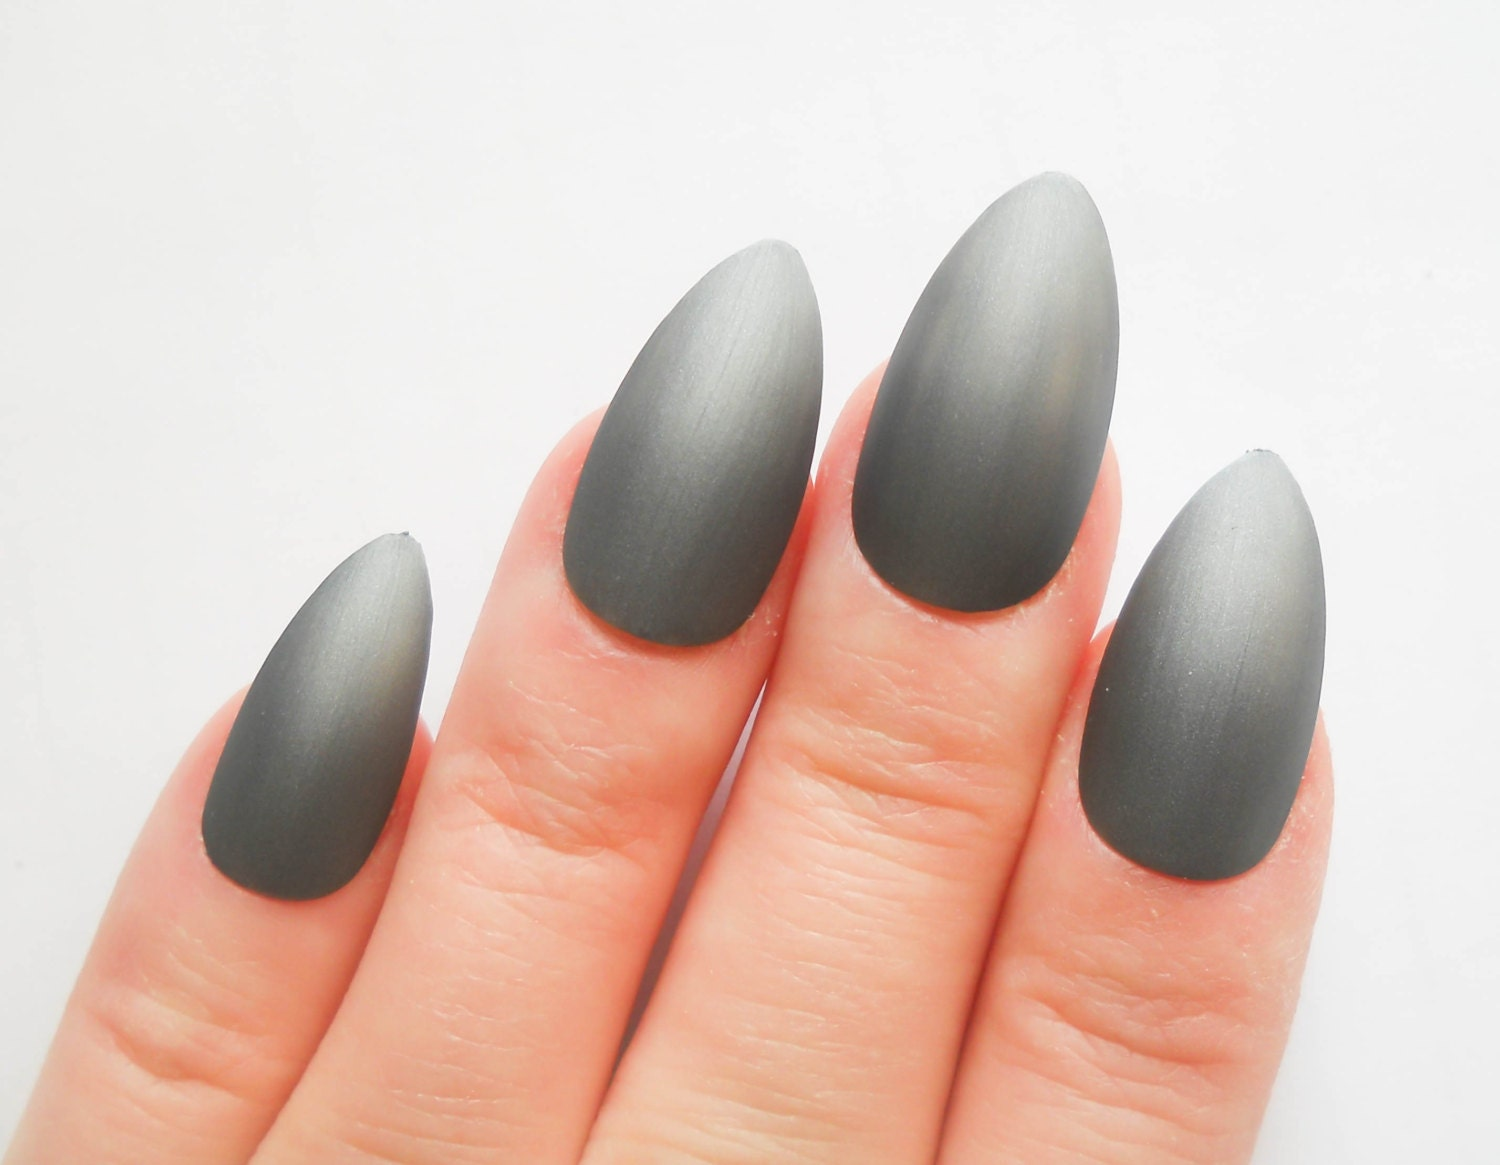 gunmetal matte stiletto nails fake nails acrylic nails false nails press on nails almond. Black Bedroom Furniture Sets. Home Design Ideas